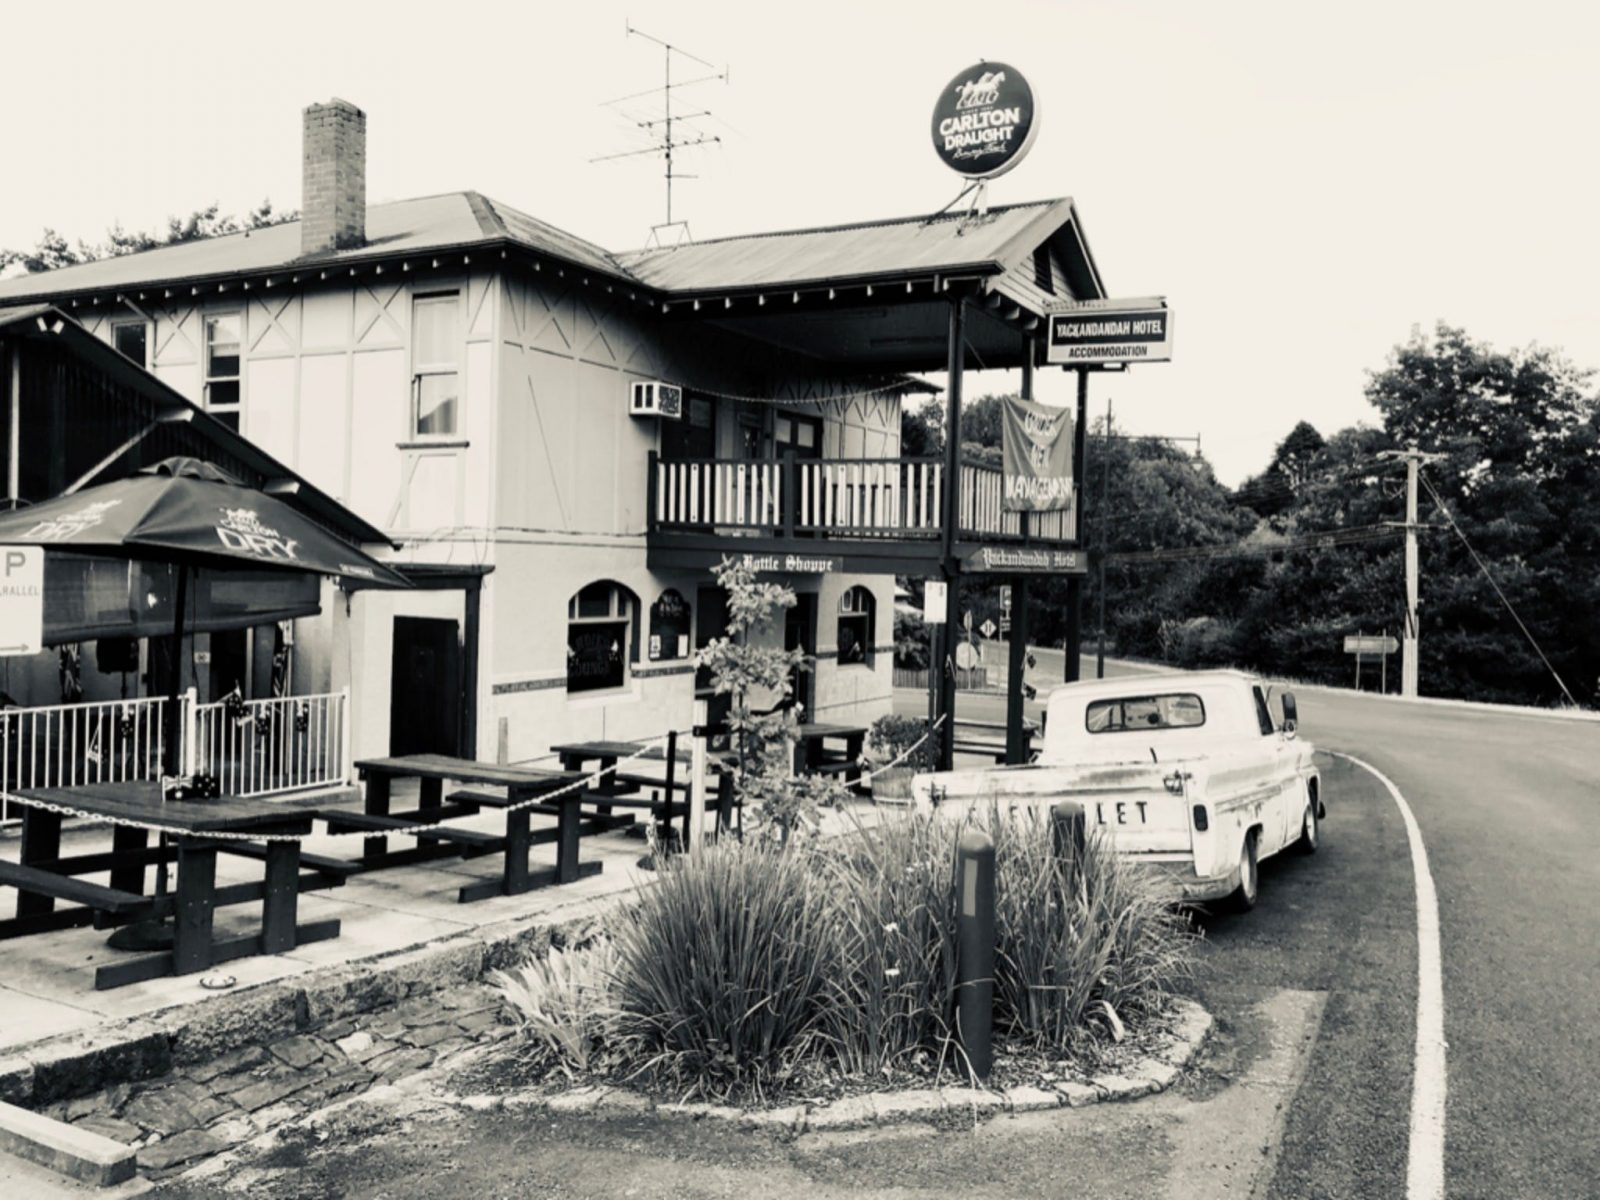 Outside view of The Bottom Pub